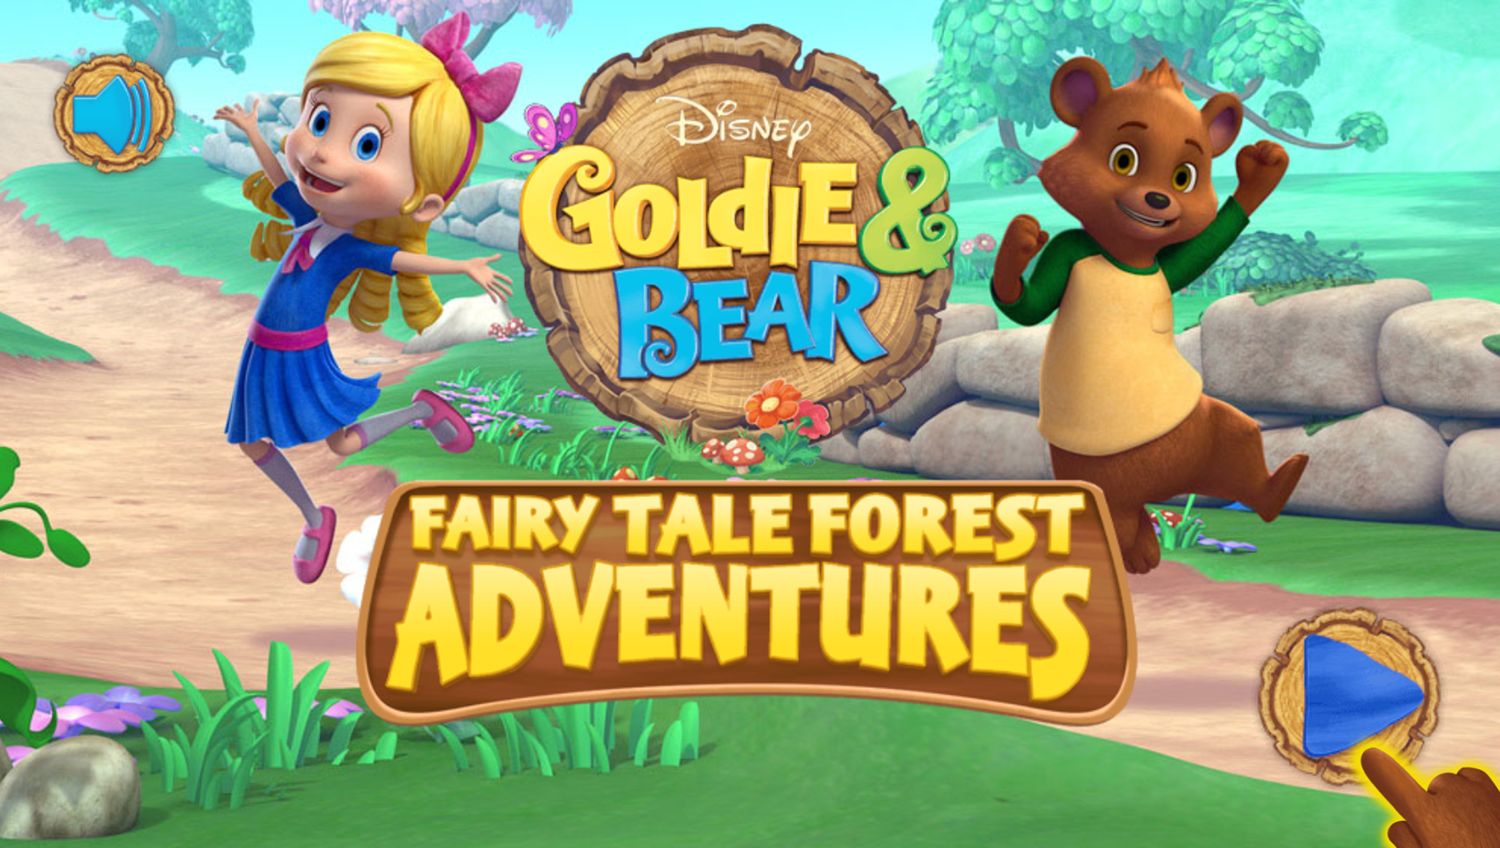 Goldie and Bear Fairy Tale Forest Adventures Game Welcome Screen Screenshot.